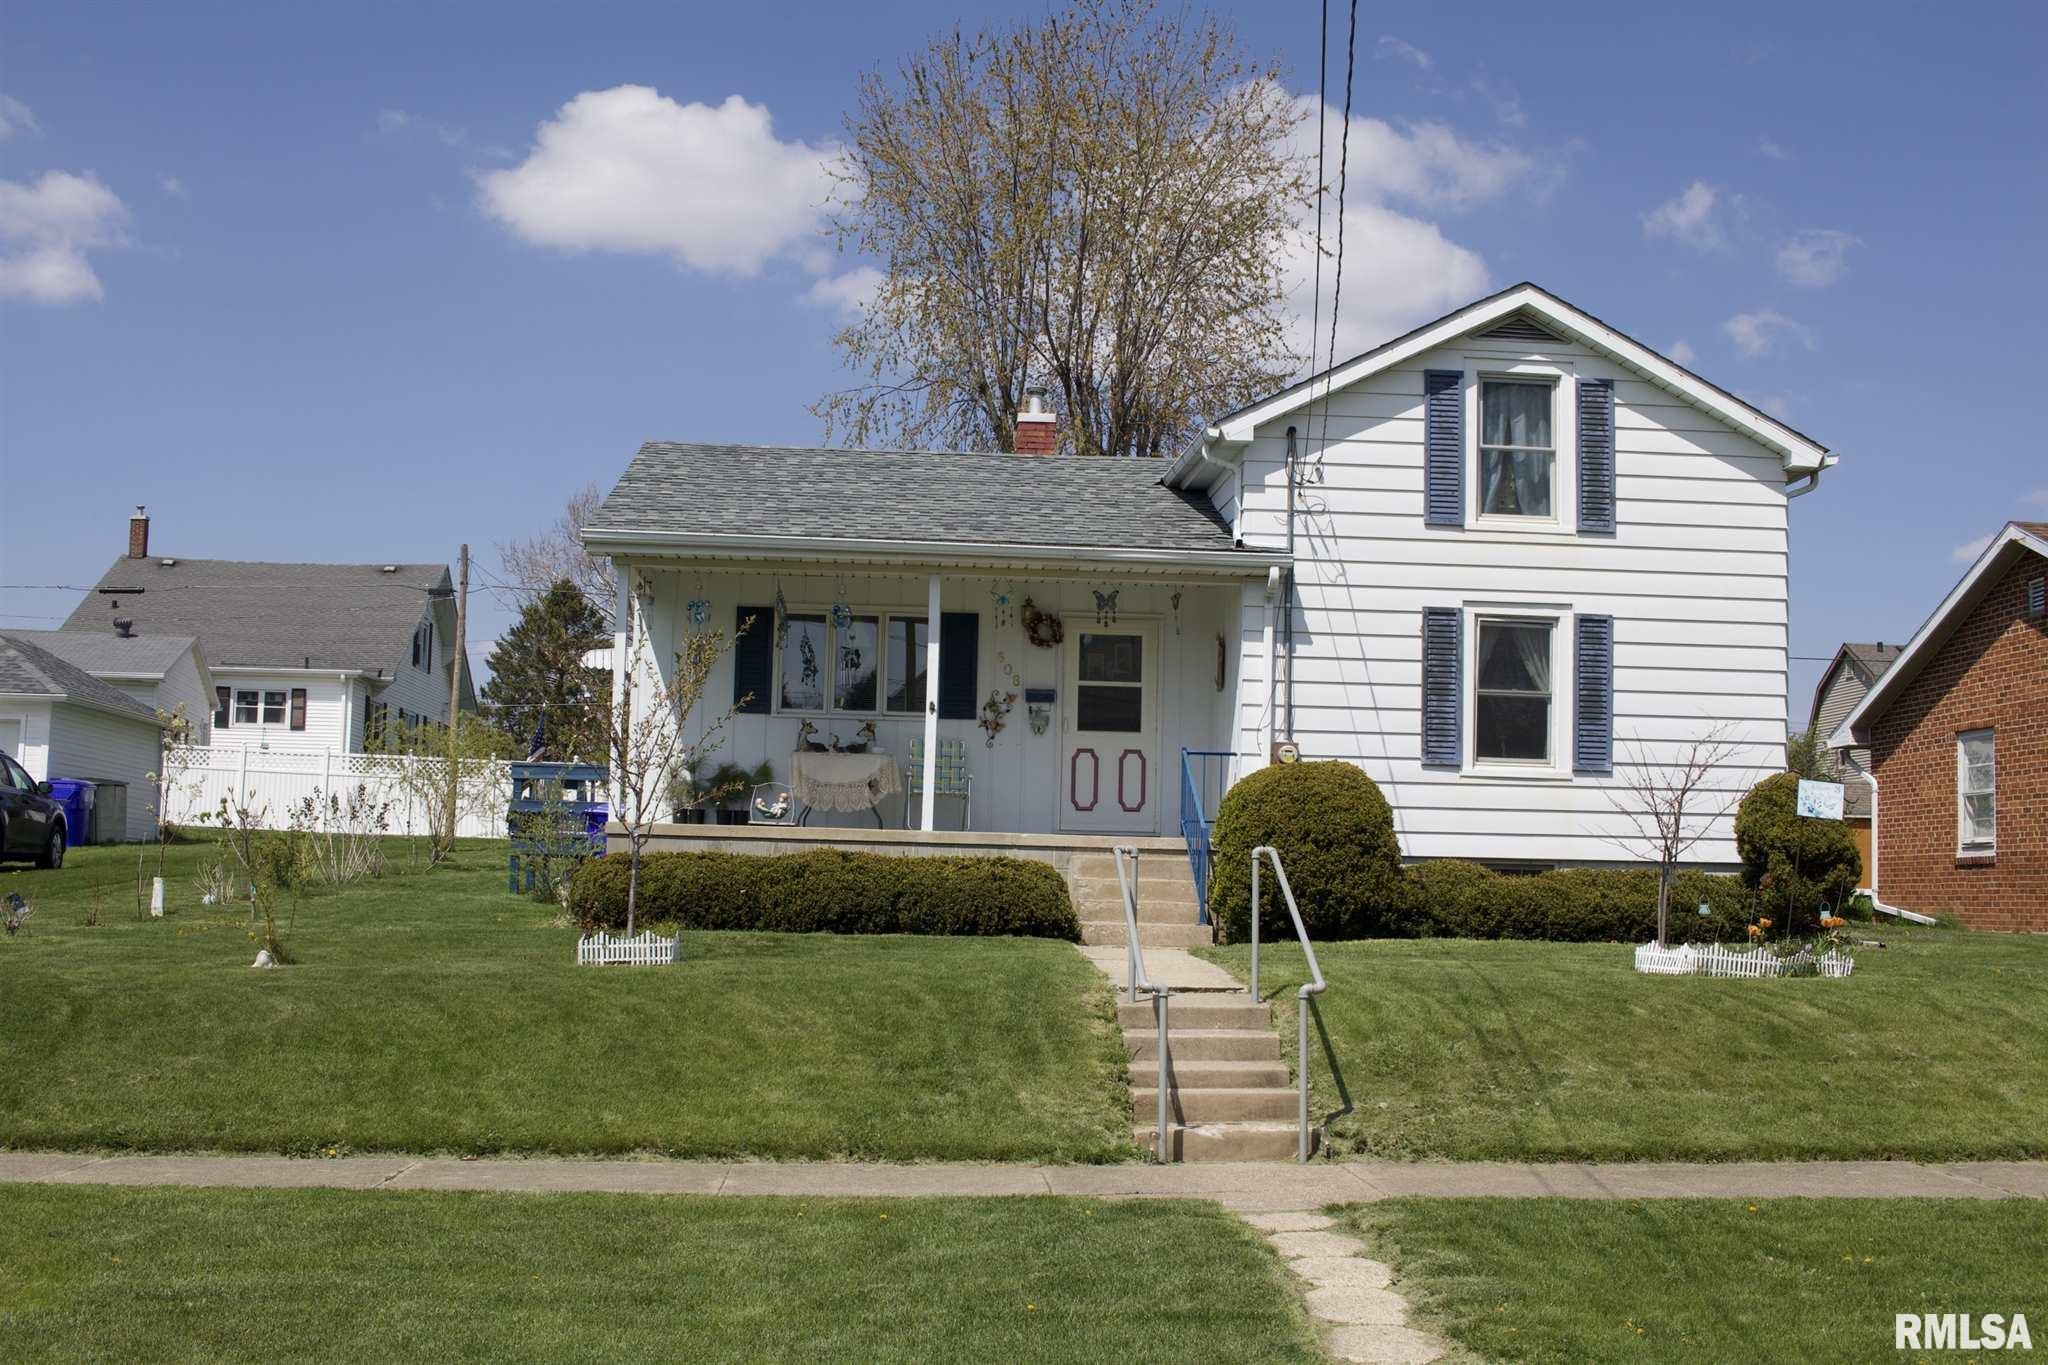 608 DIVISION Property Photo - Kewanee, IL real estate listing